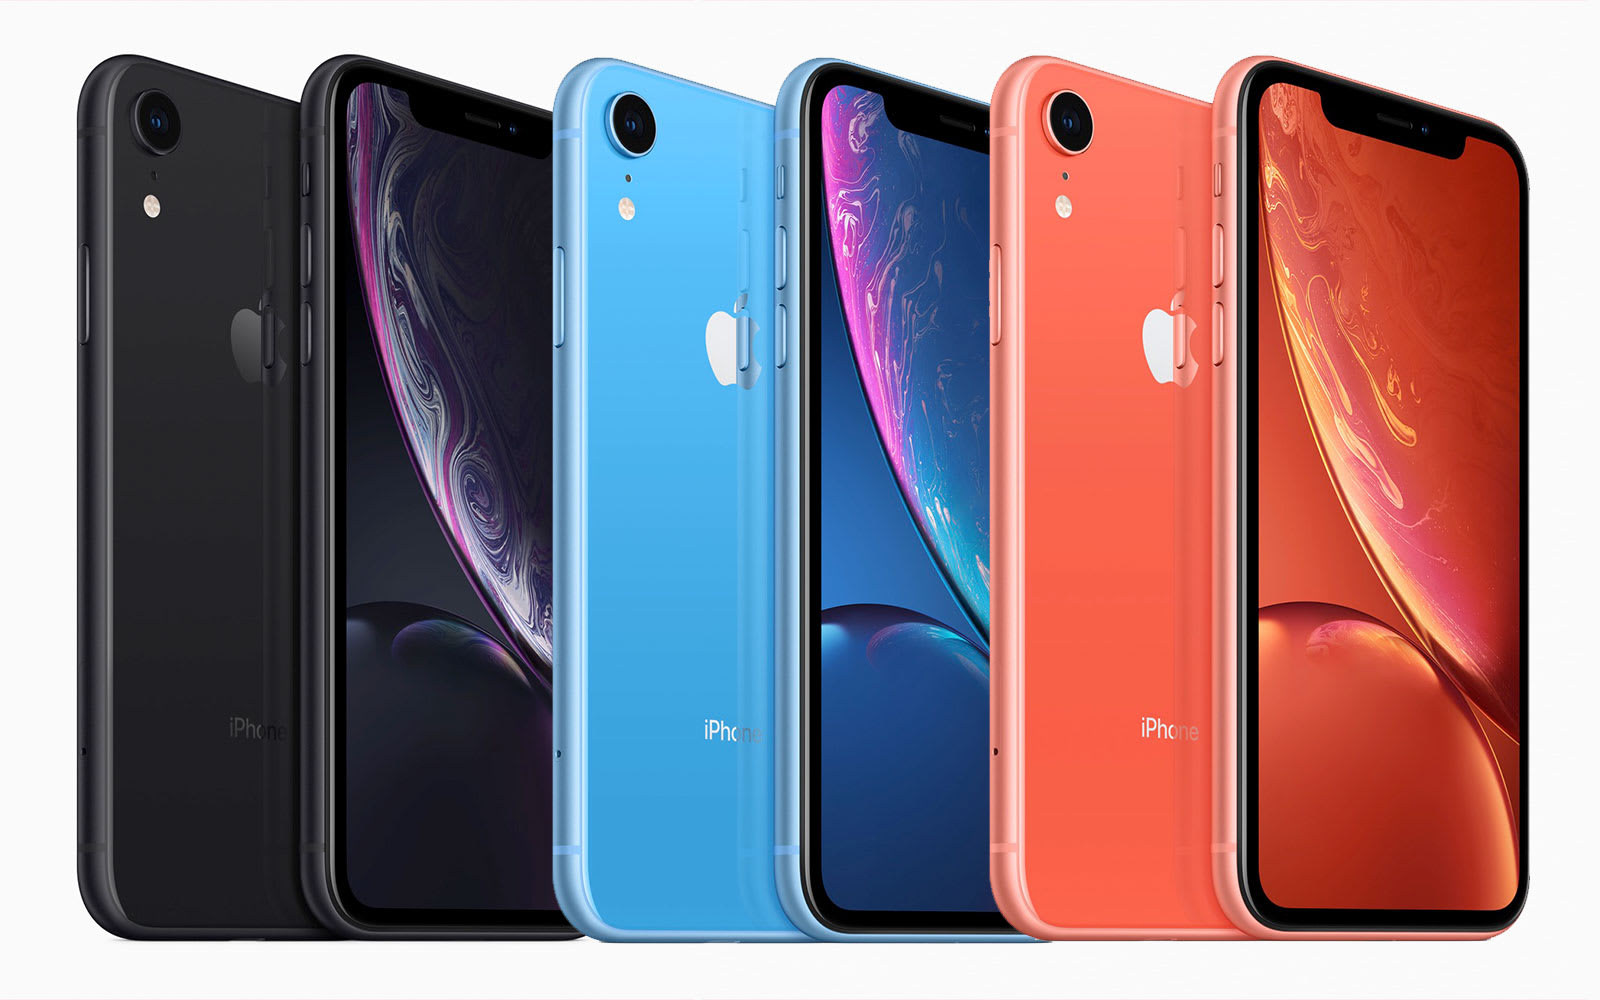 new arrivals 0dcee fbdc8 Apple's iPhone Xr is an 'affordable' iPhone X